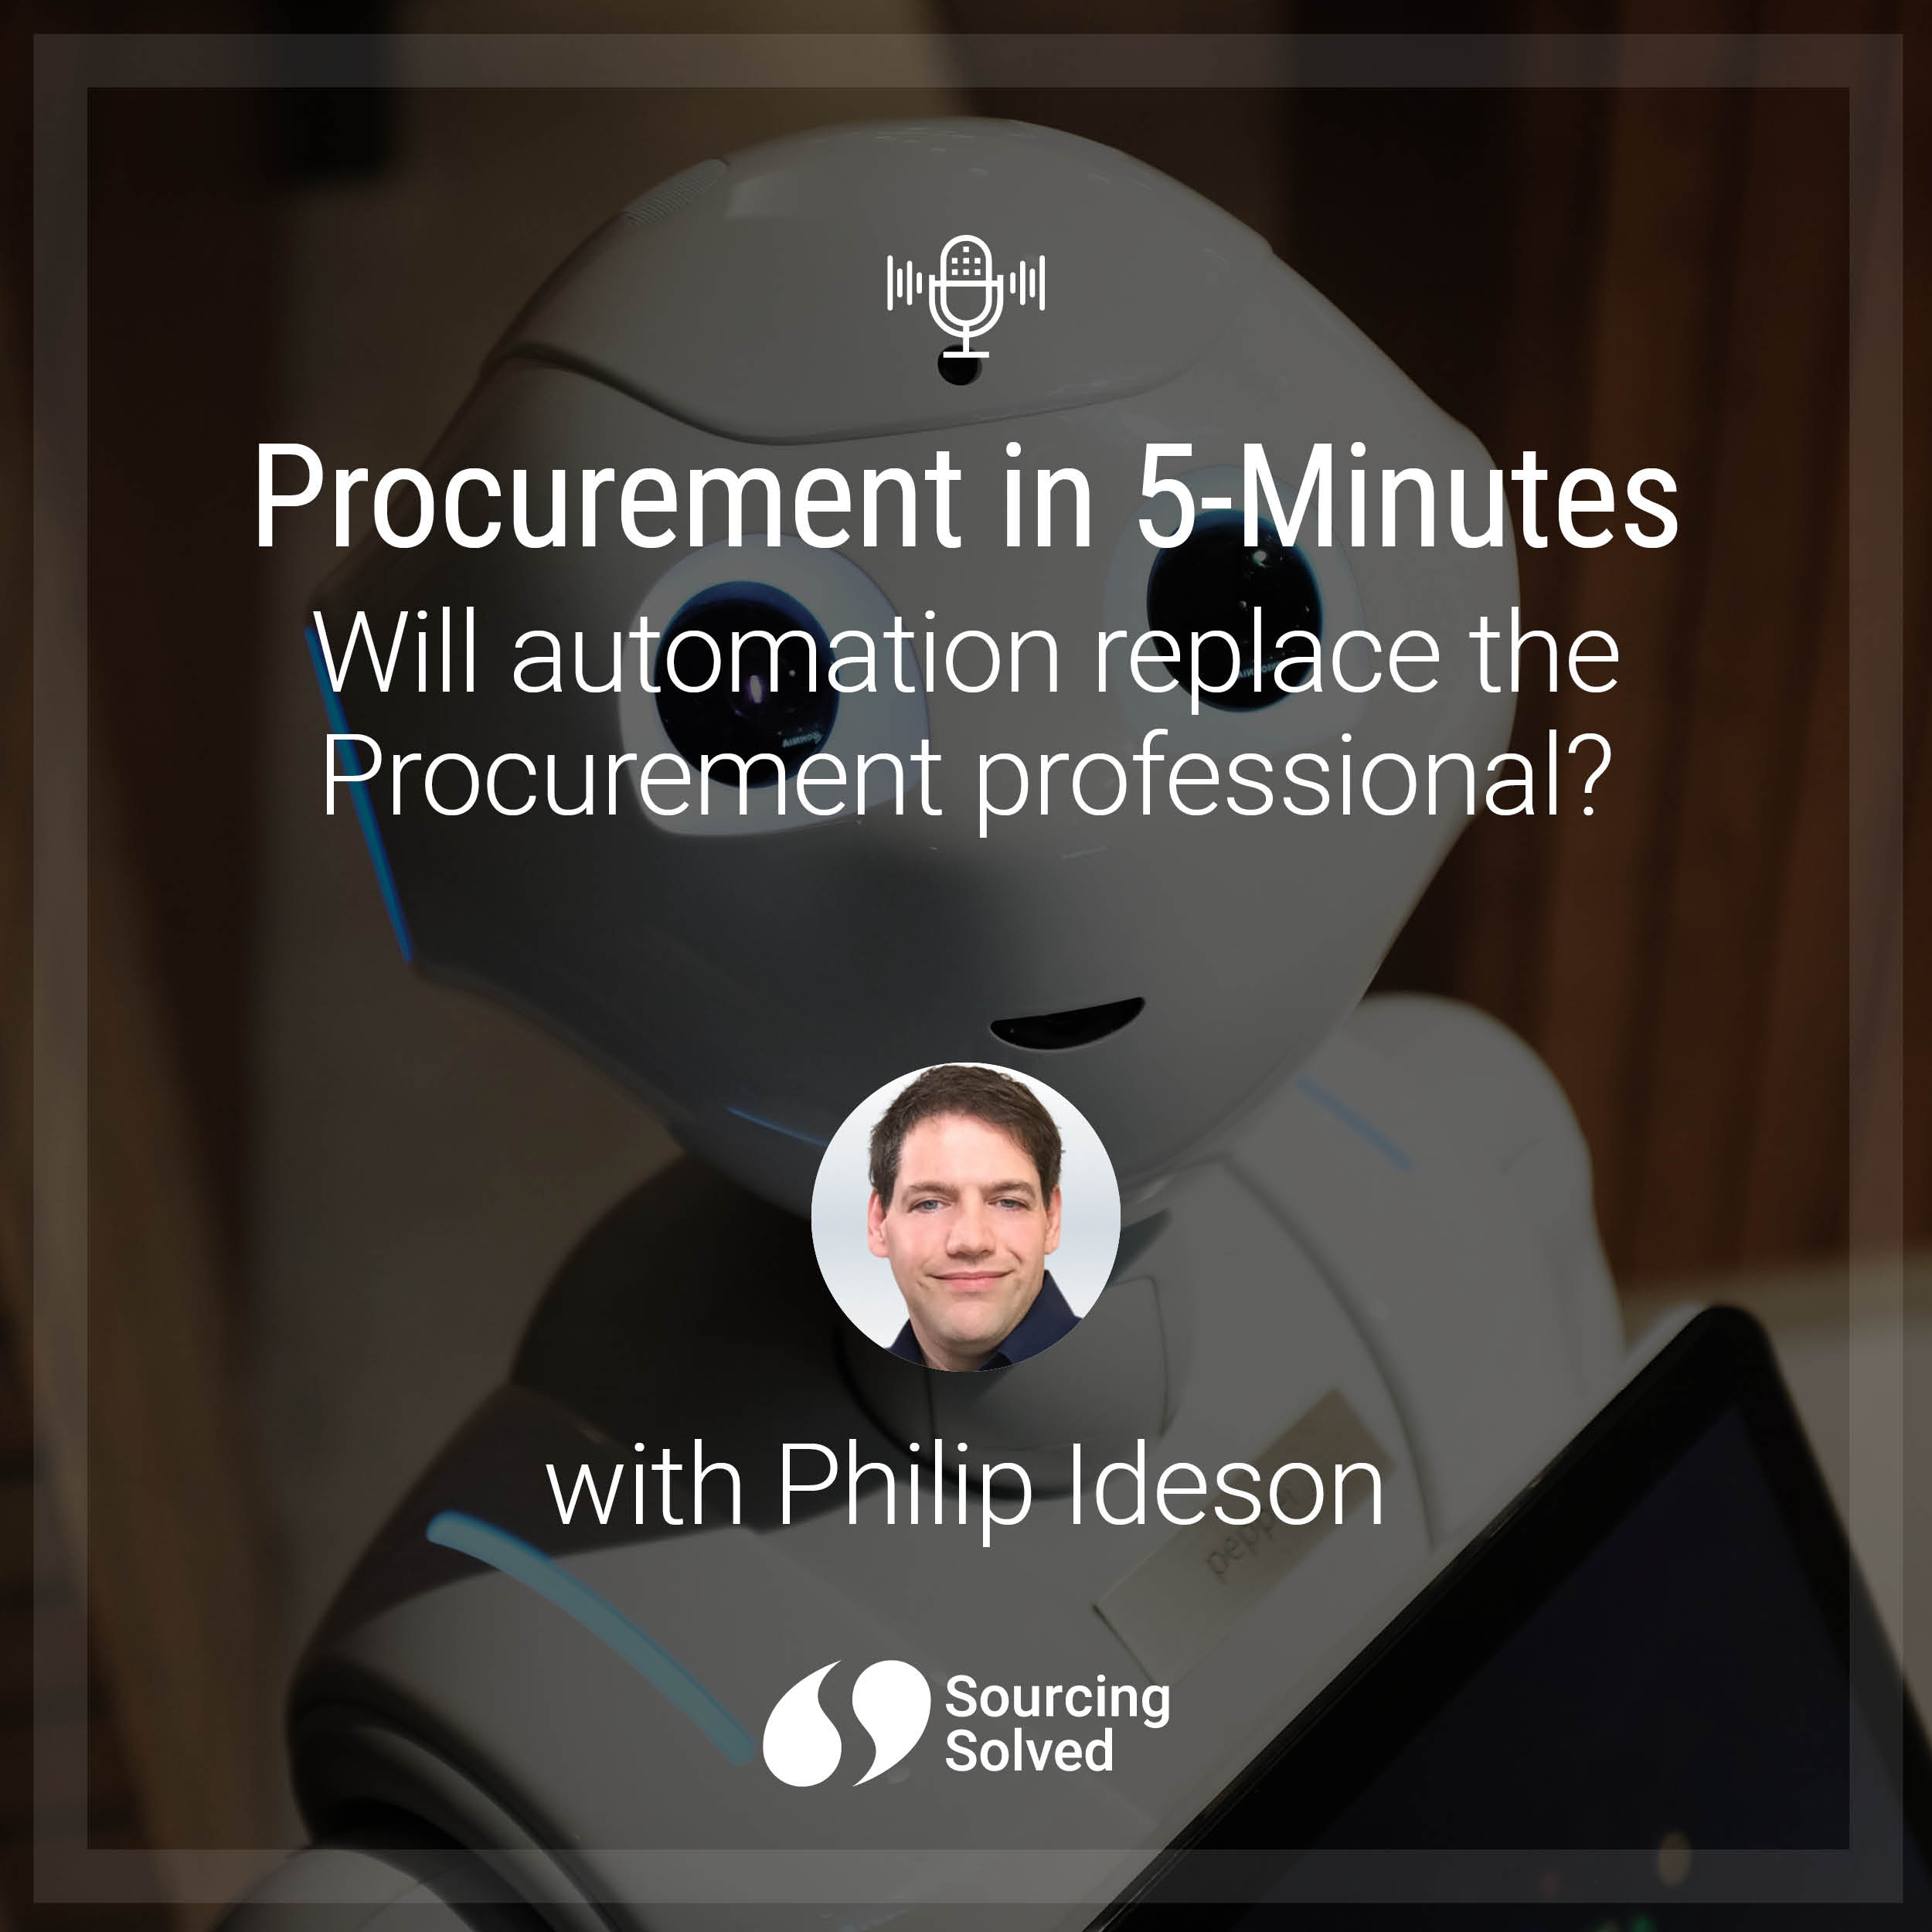 Procurement in 5-Minutes: Will Automation replace the Procurement professional?